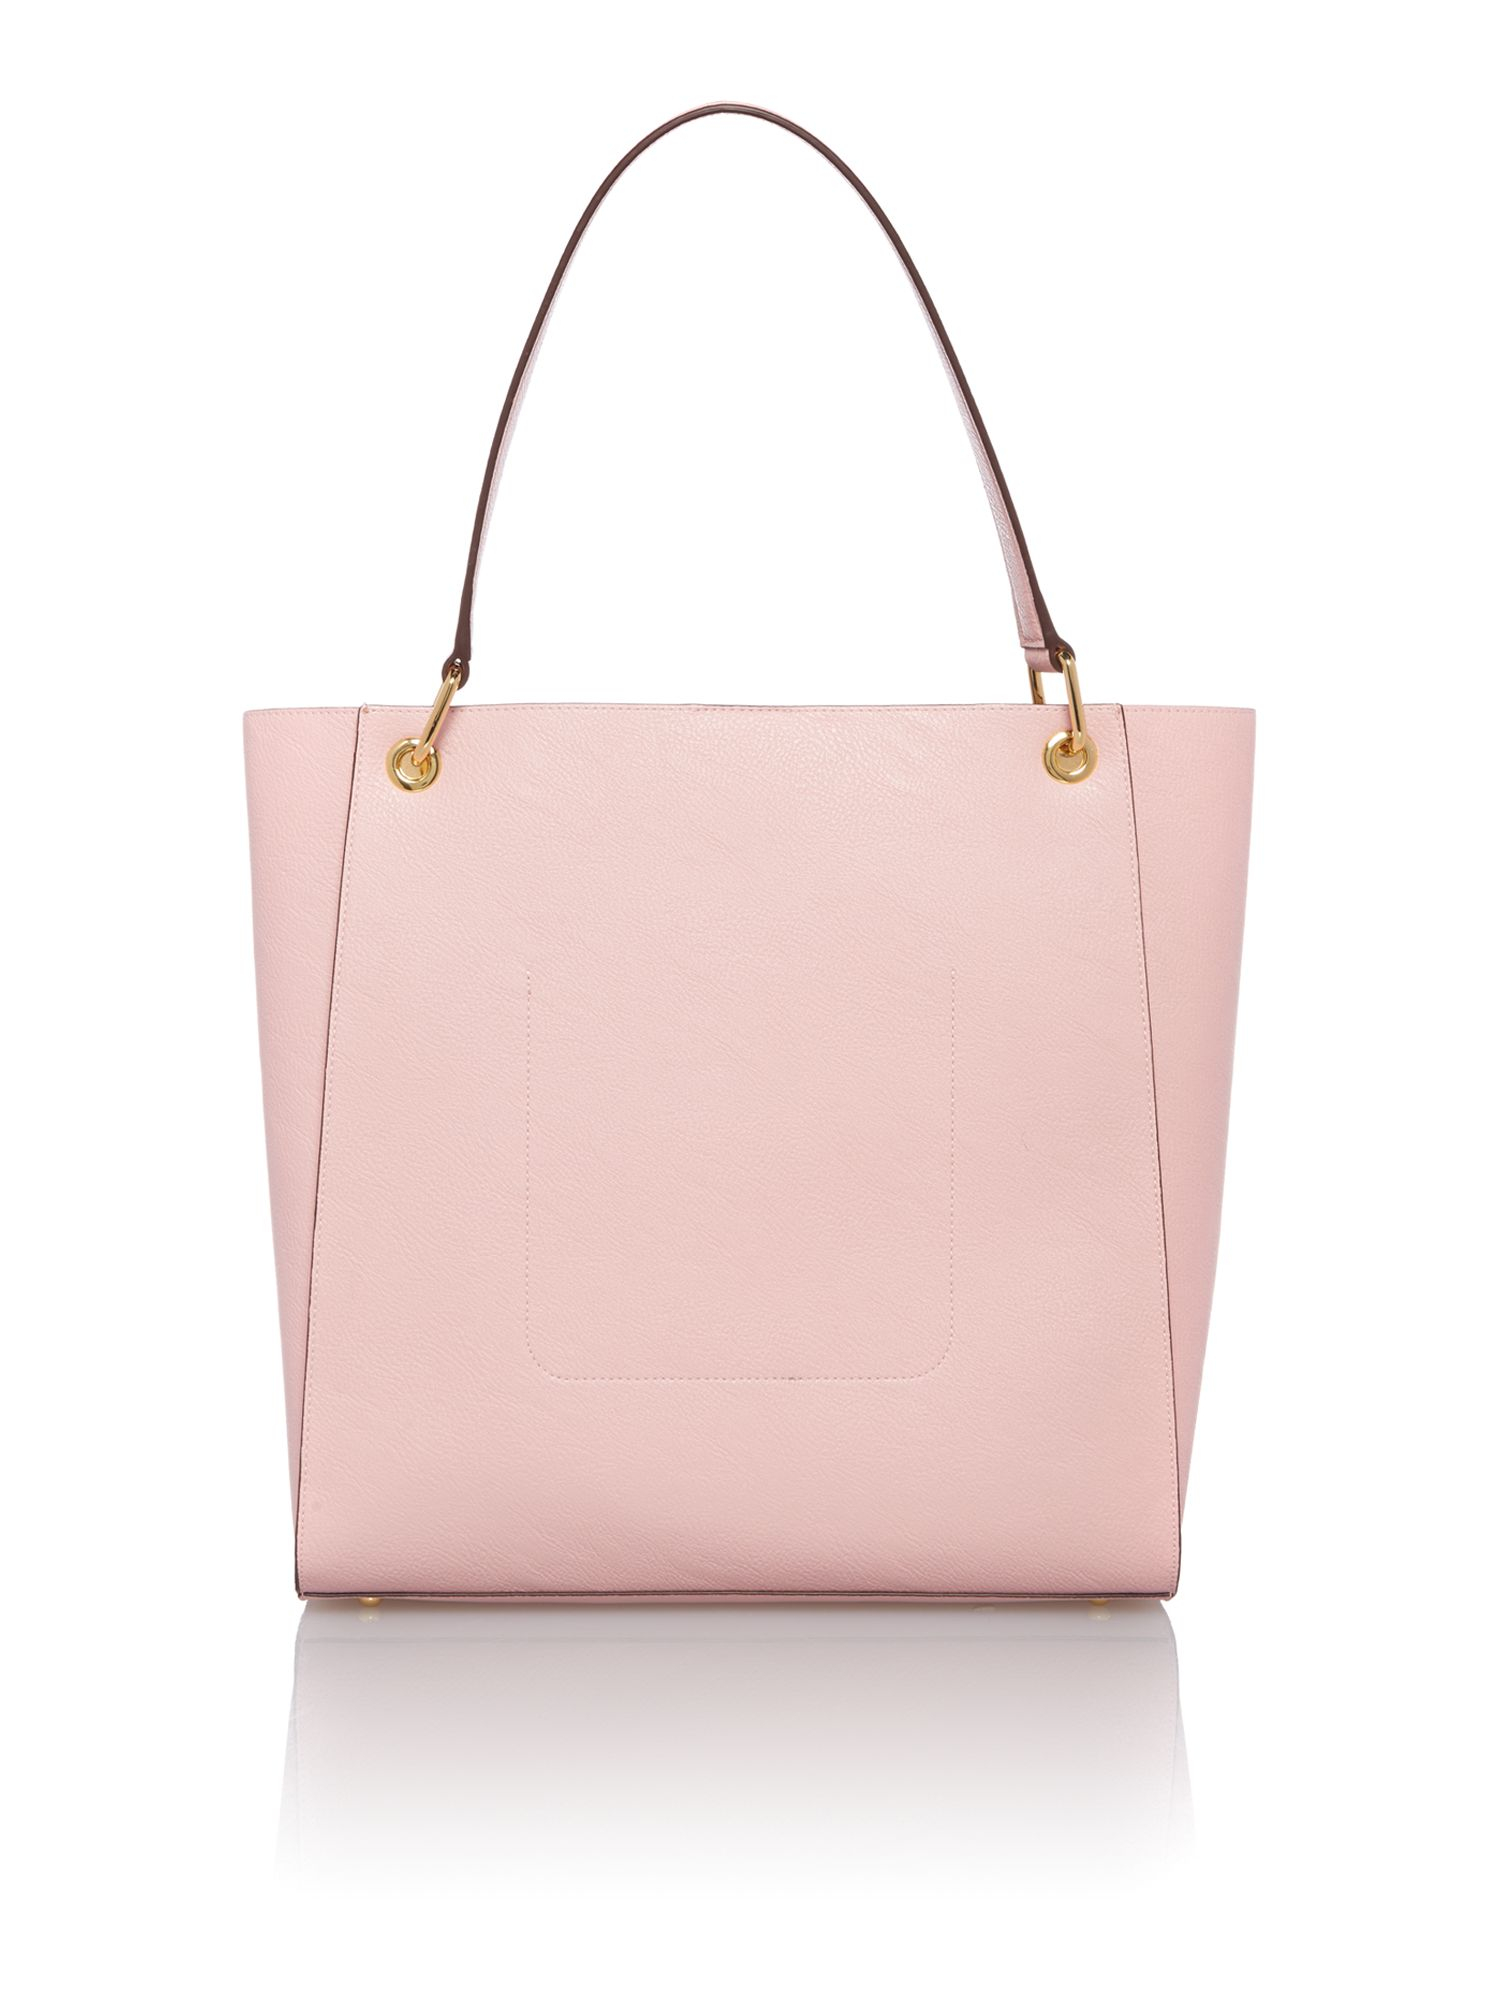 Lauren by ralph lauren Aiden Pale Pink Large Tote Bag in Pink | Lyst